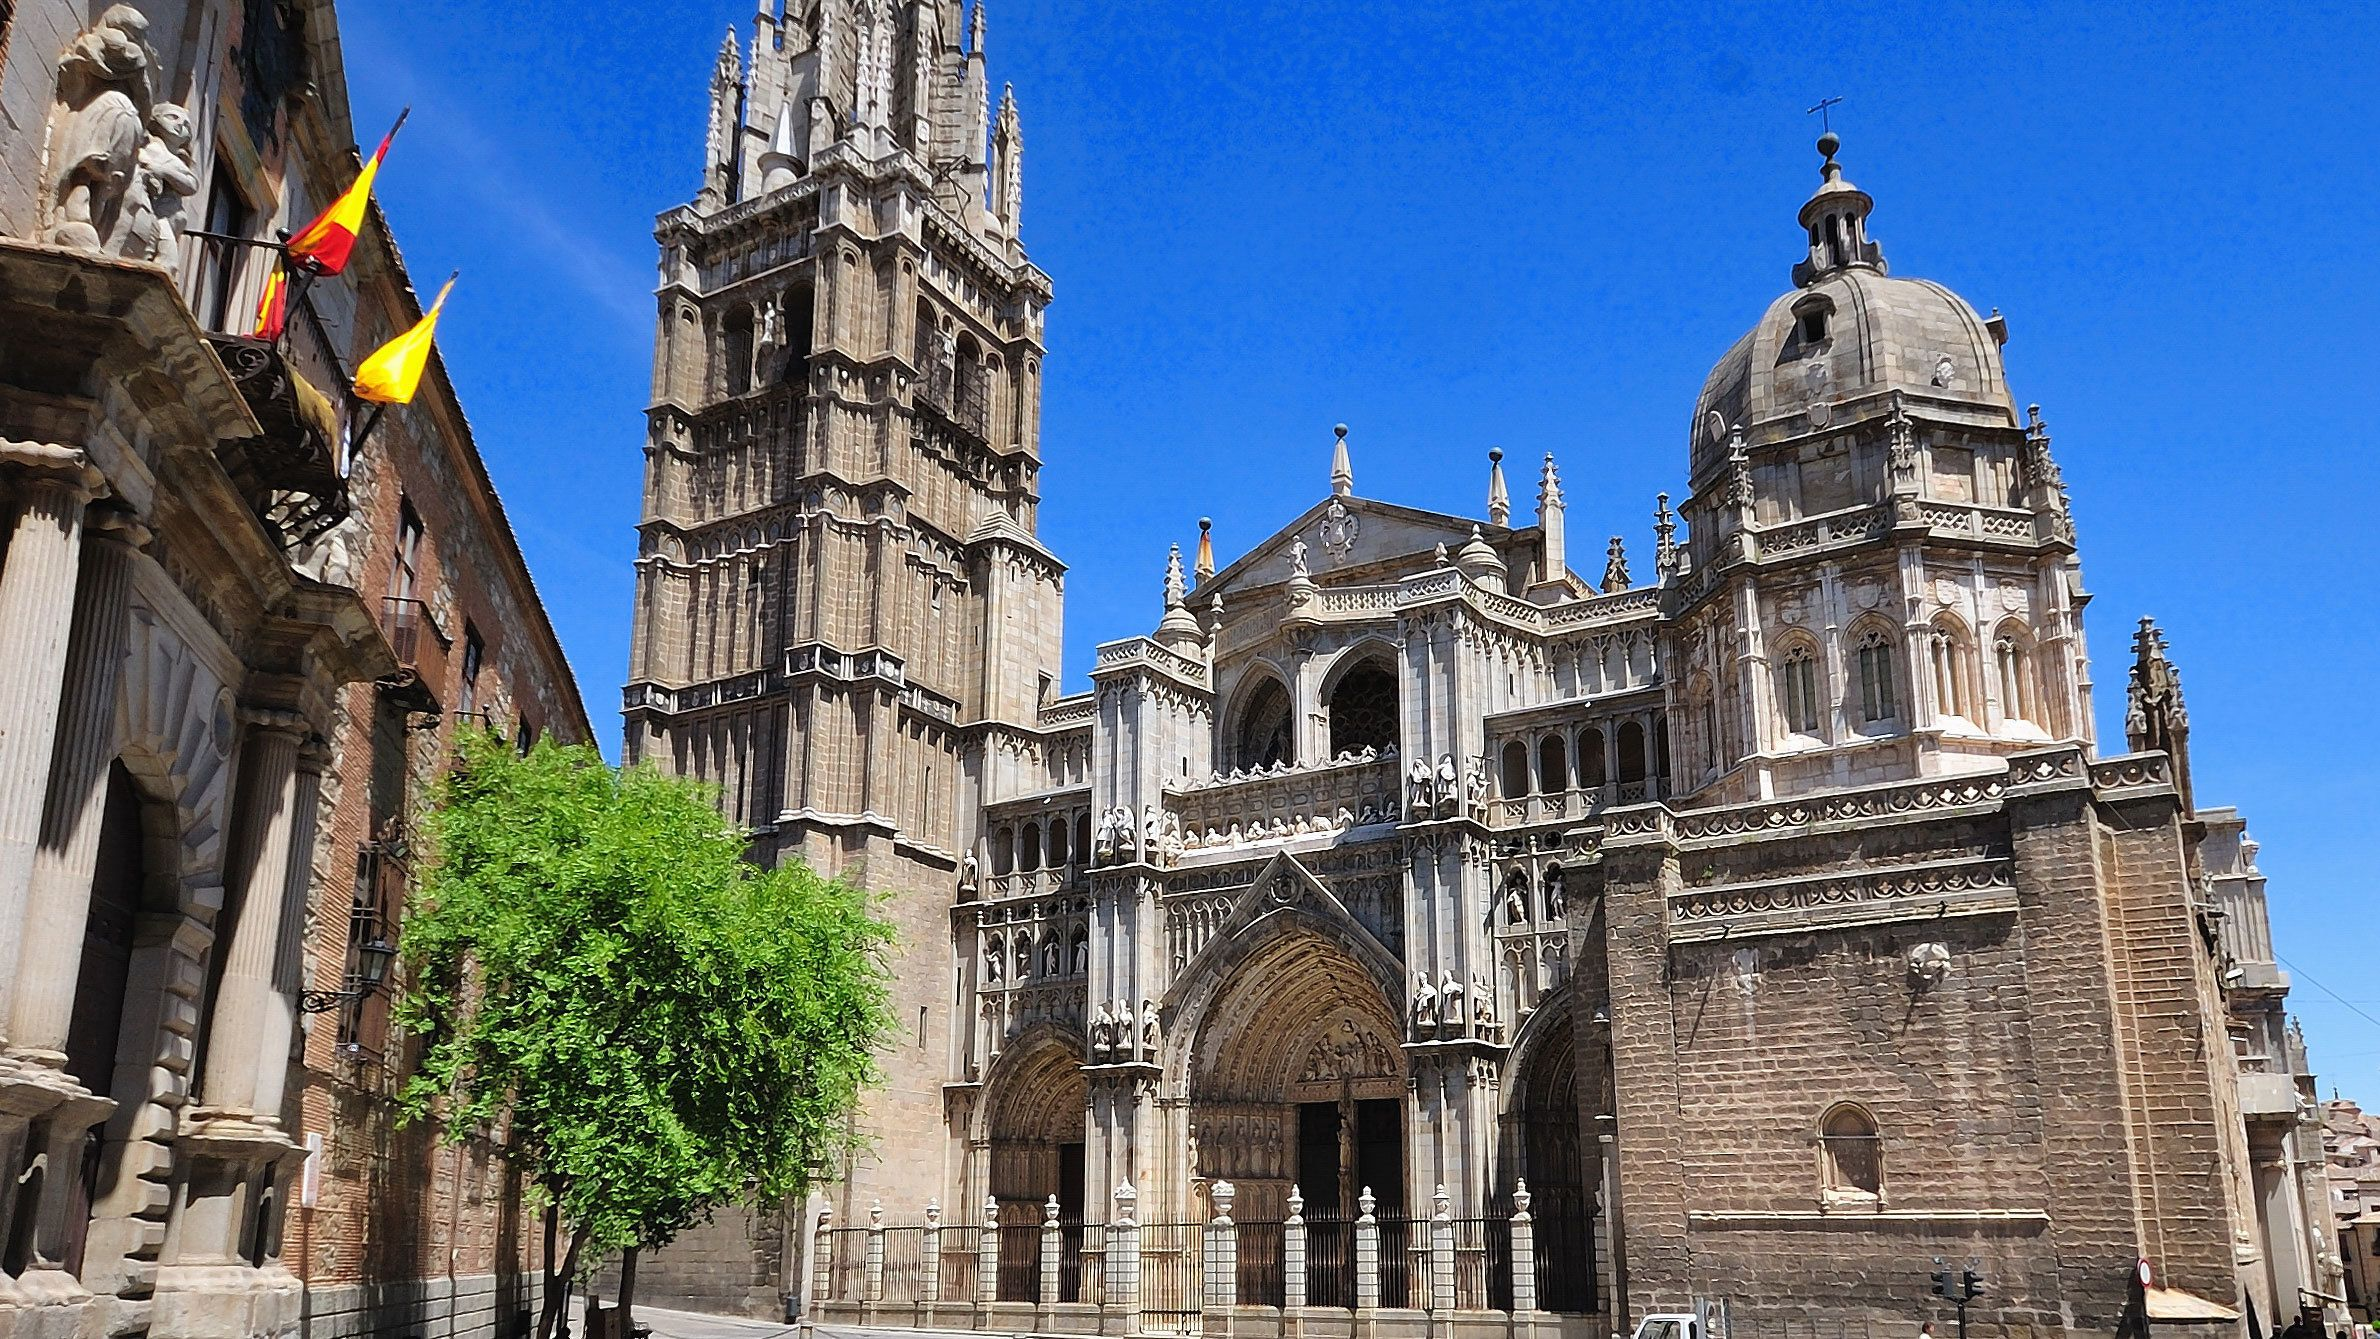 View of the Toledo Cathedral in Spain